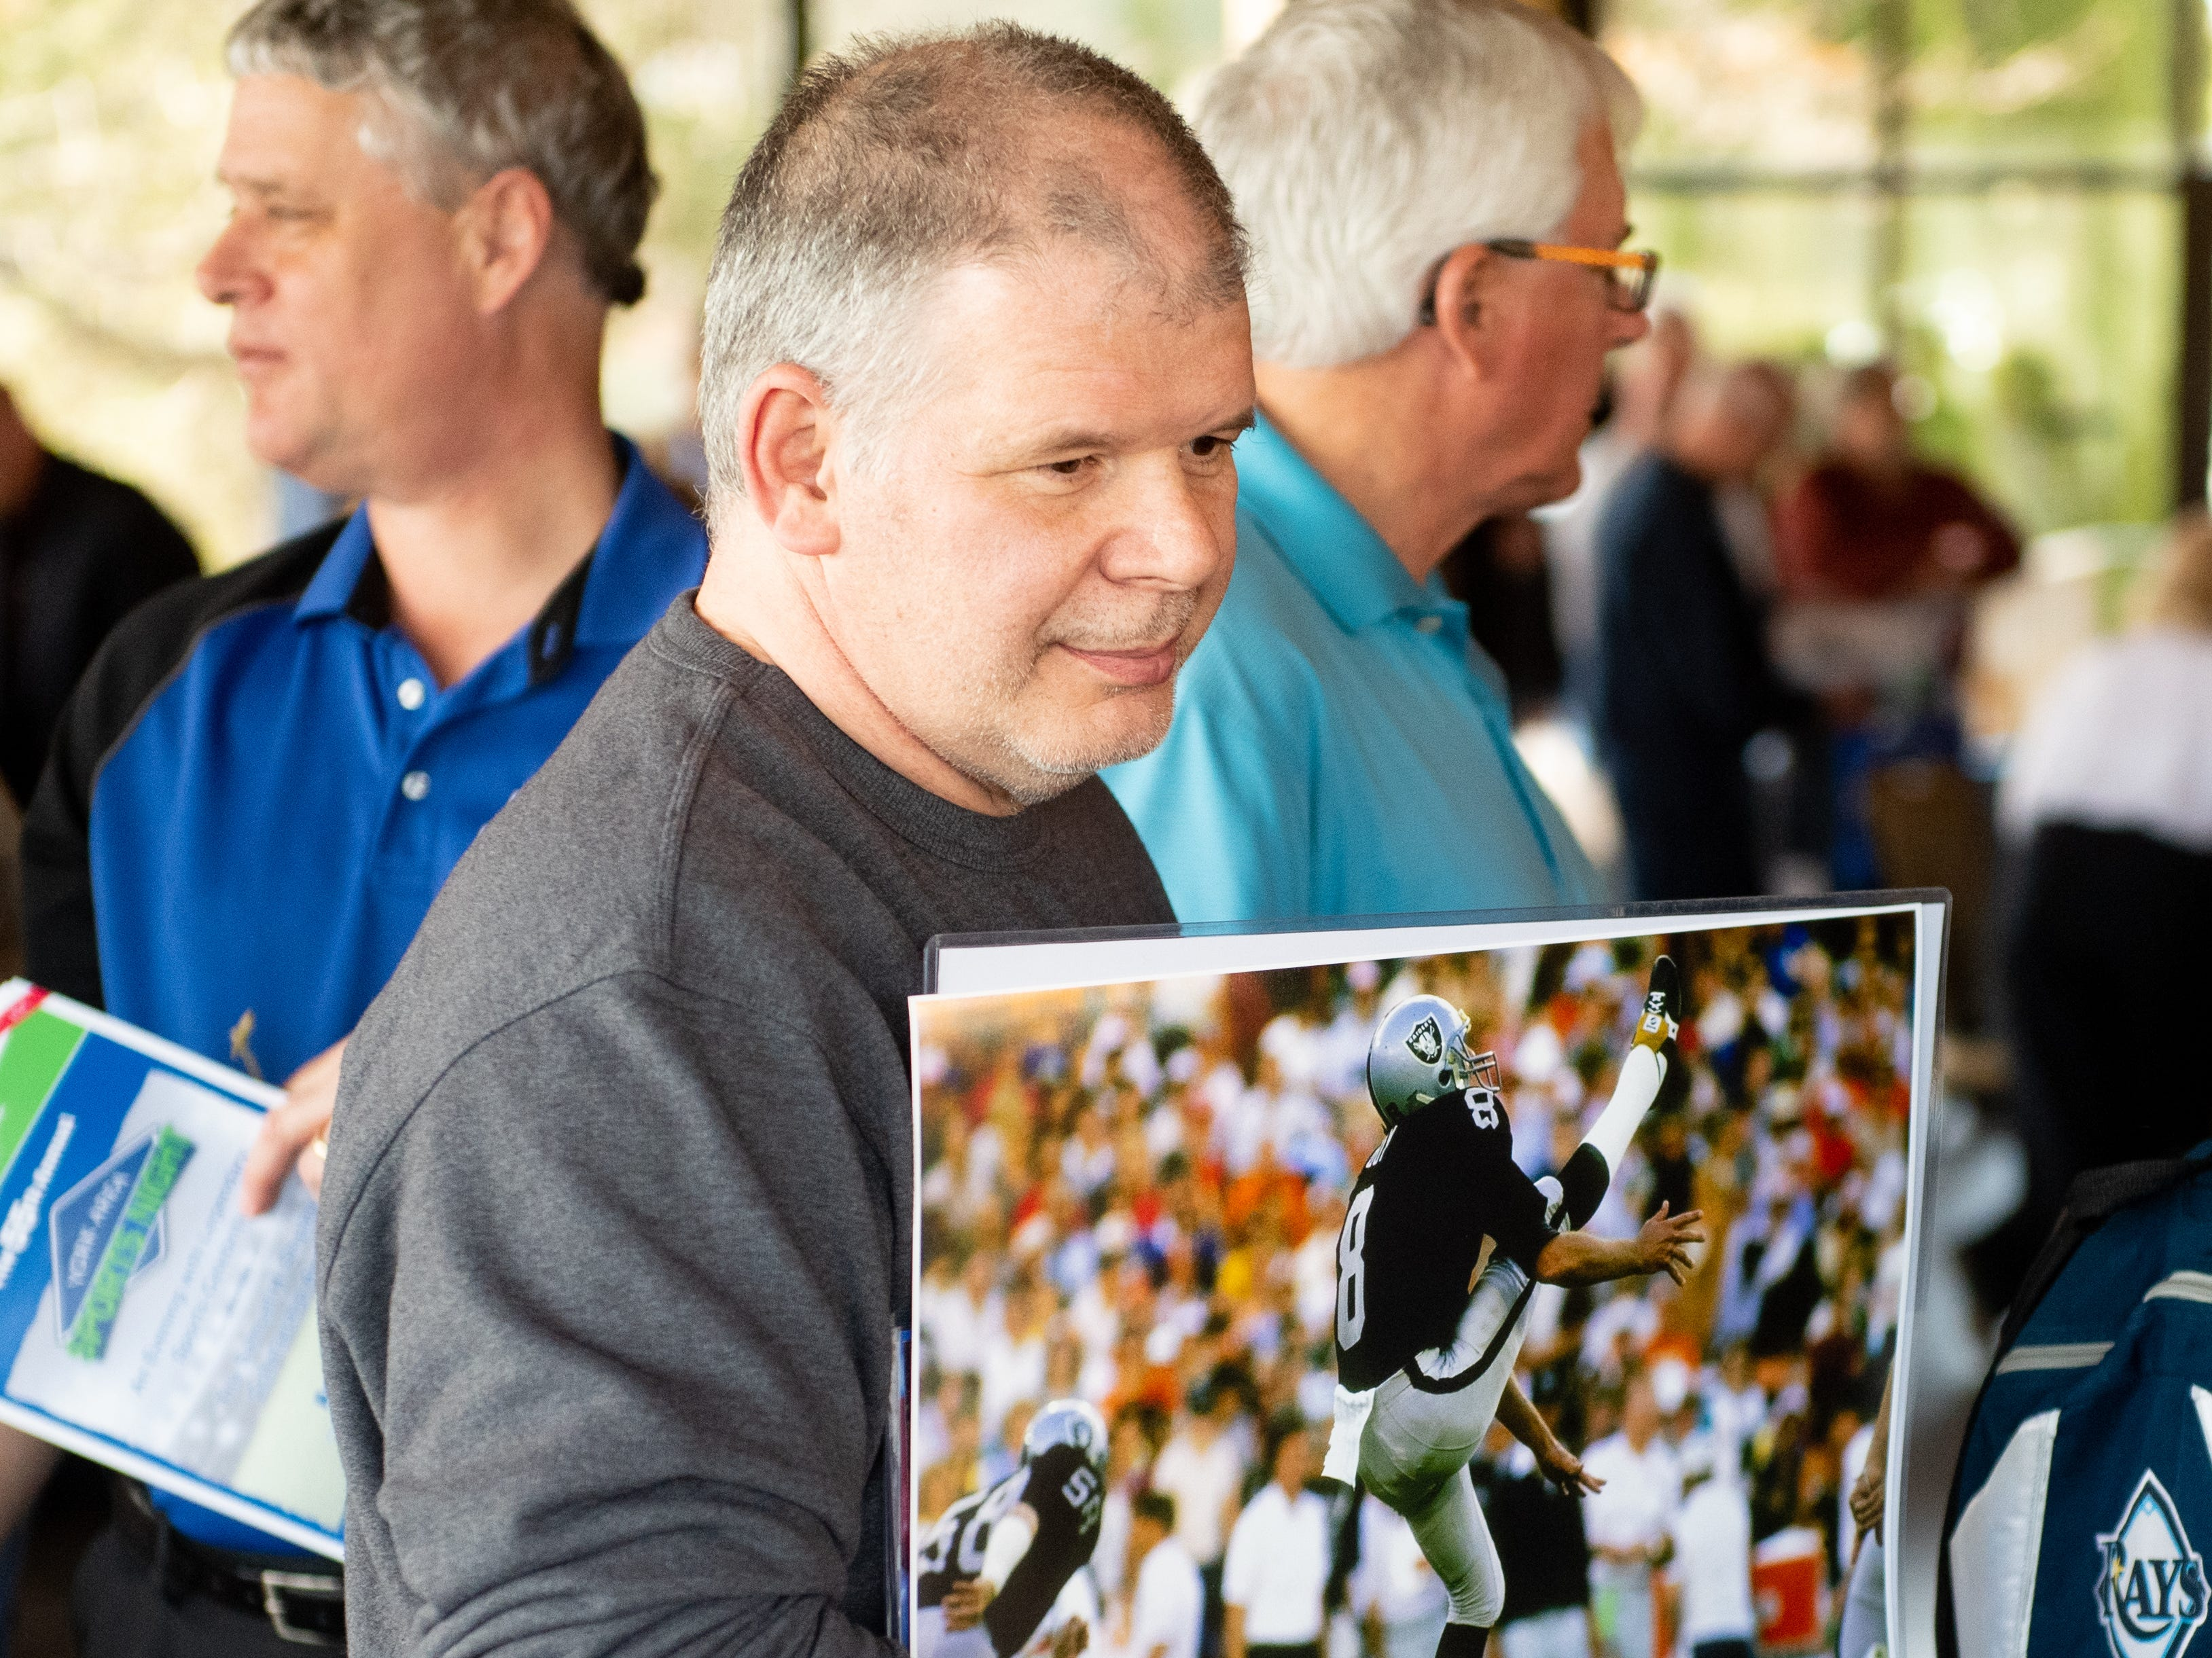 Darin Colp stands in line to meet hall of fame punter Ray Guy during the 55th Annual York Area Sports Night, April 4, 2019 at the Heritage Hills Golf and Conference Center.